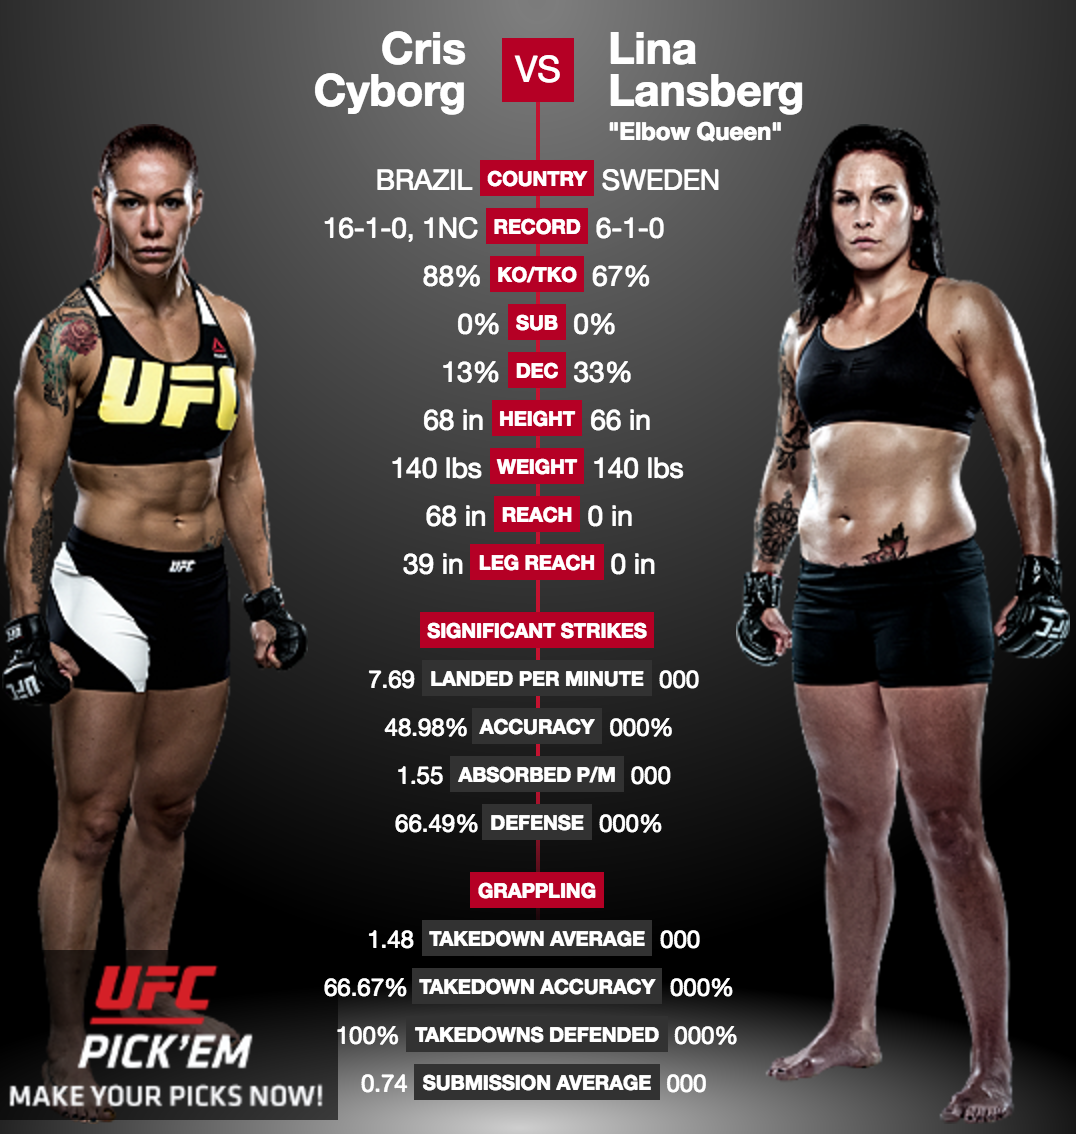 UFC Fight Night: Cris Cyborg vs. Lansberg